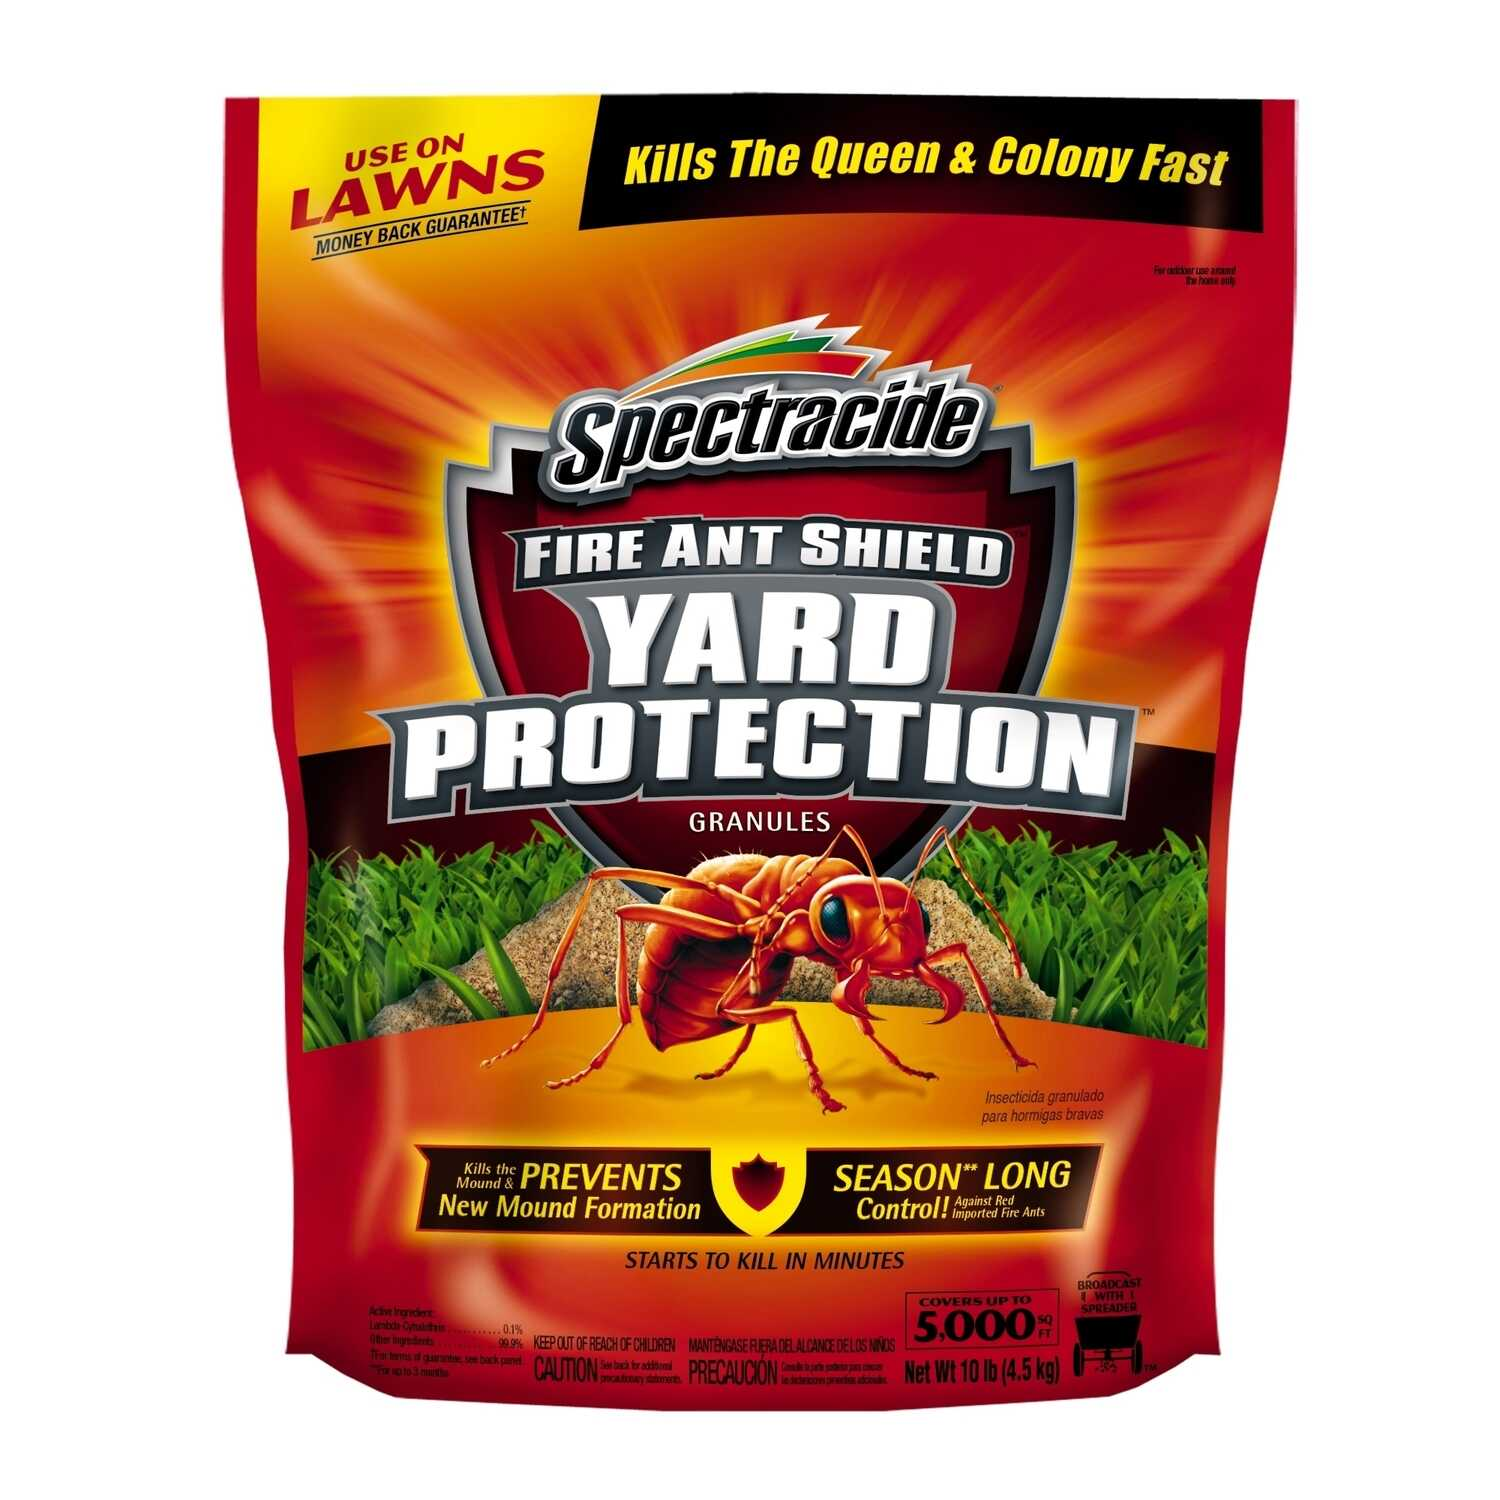 Spectracide  Fire Ant Shield Yard Protection  Ant Killer  10 lb.